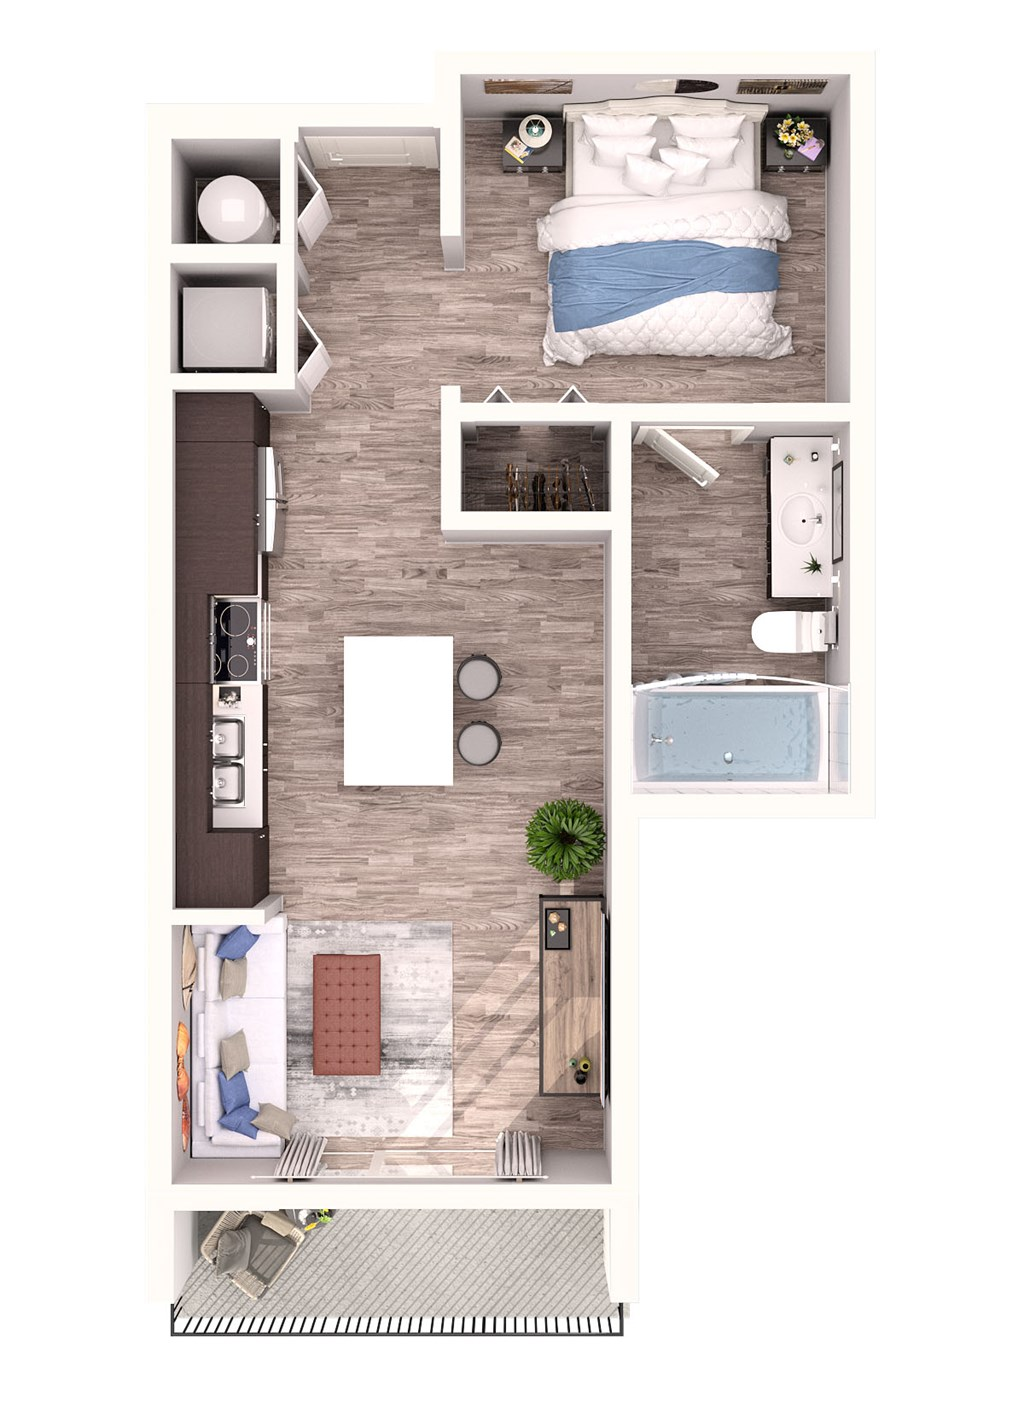 S1 Floor Plan at SofA Downtown Luxury Apartments, Delray Beach, Florida